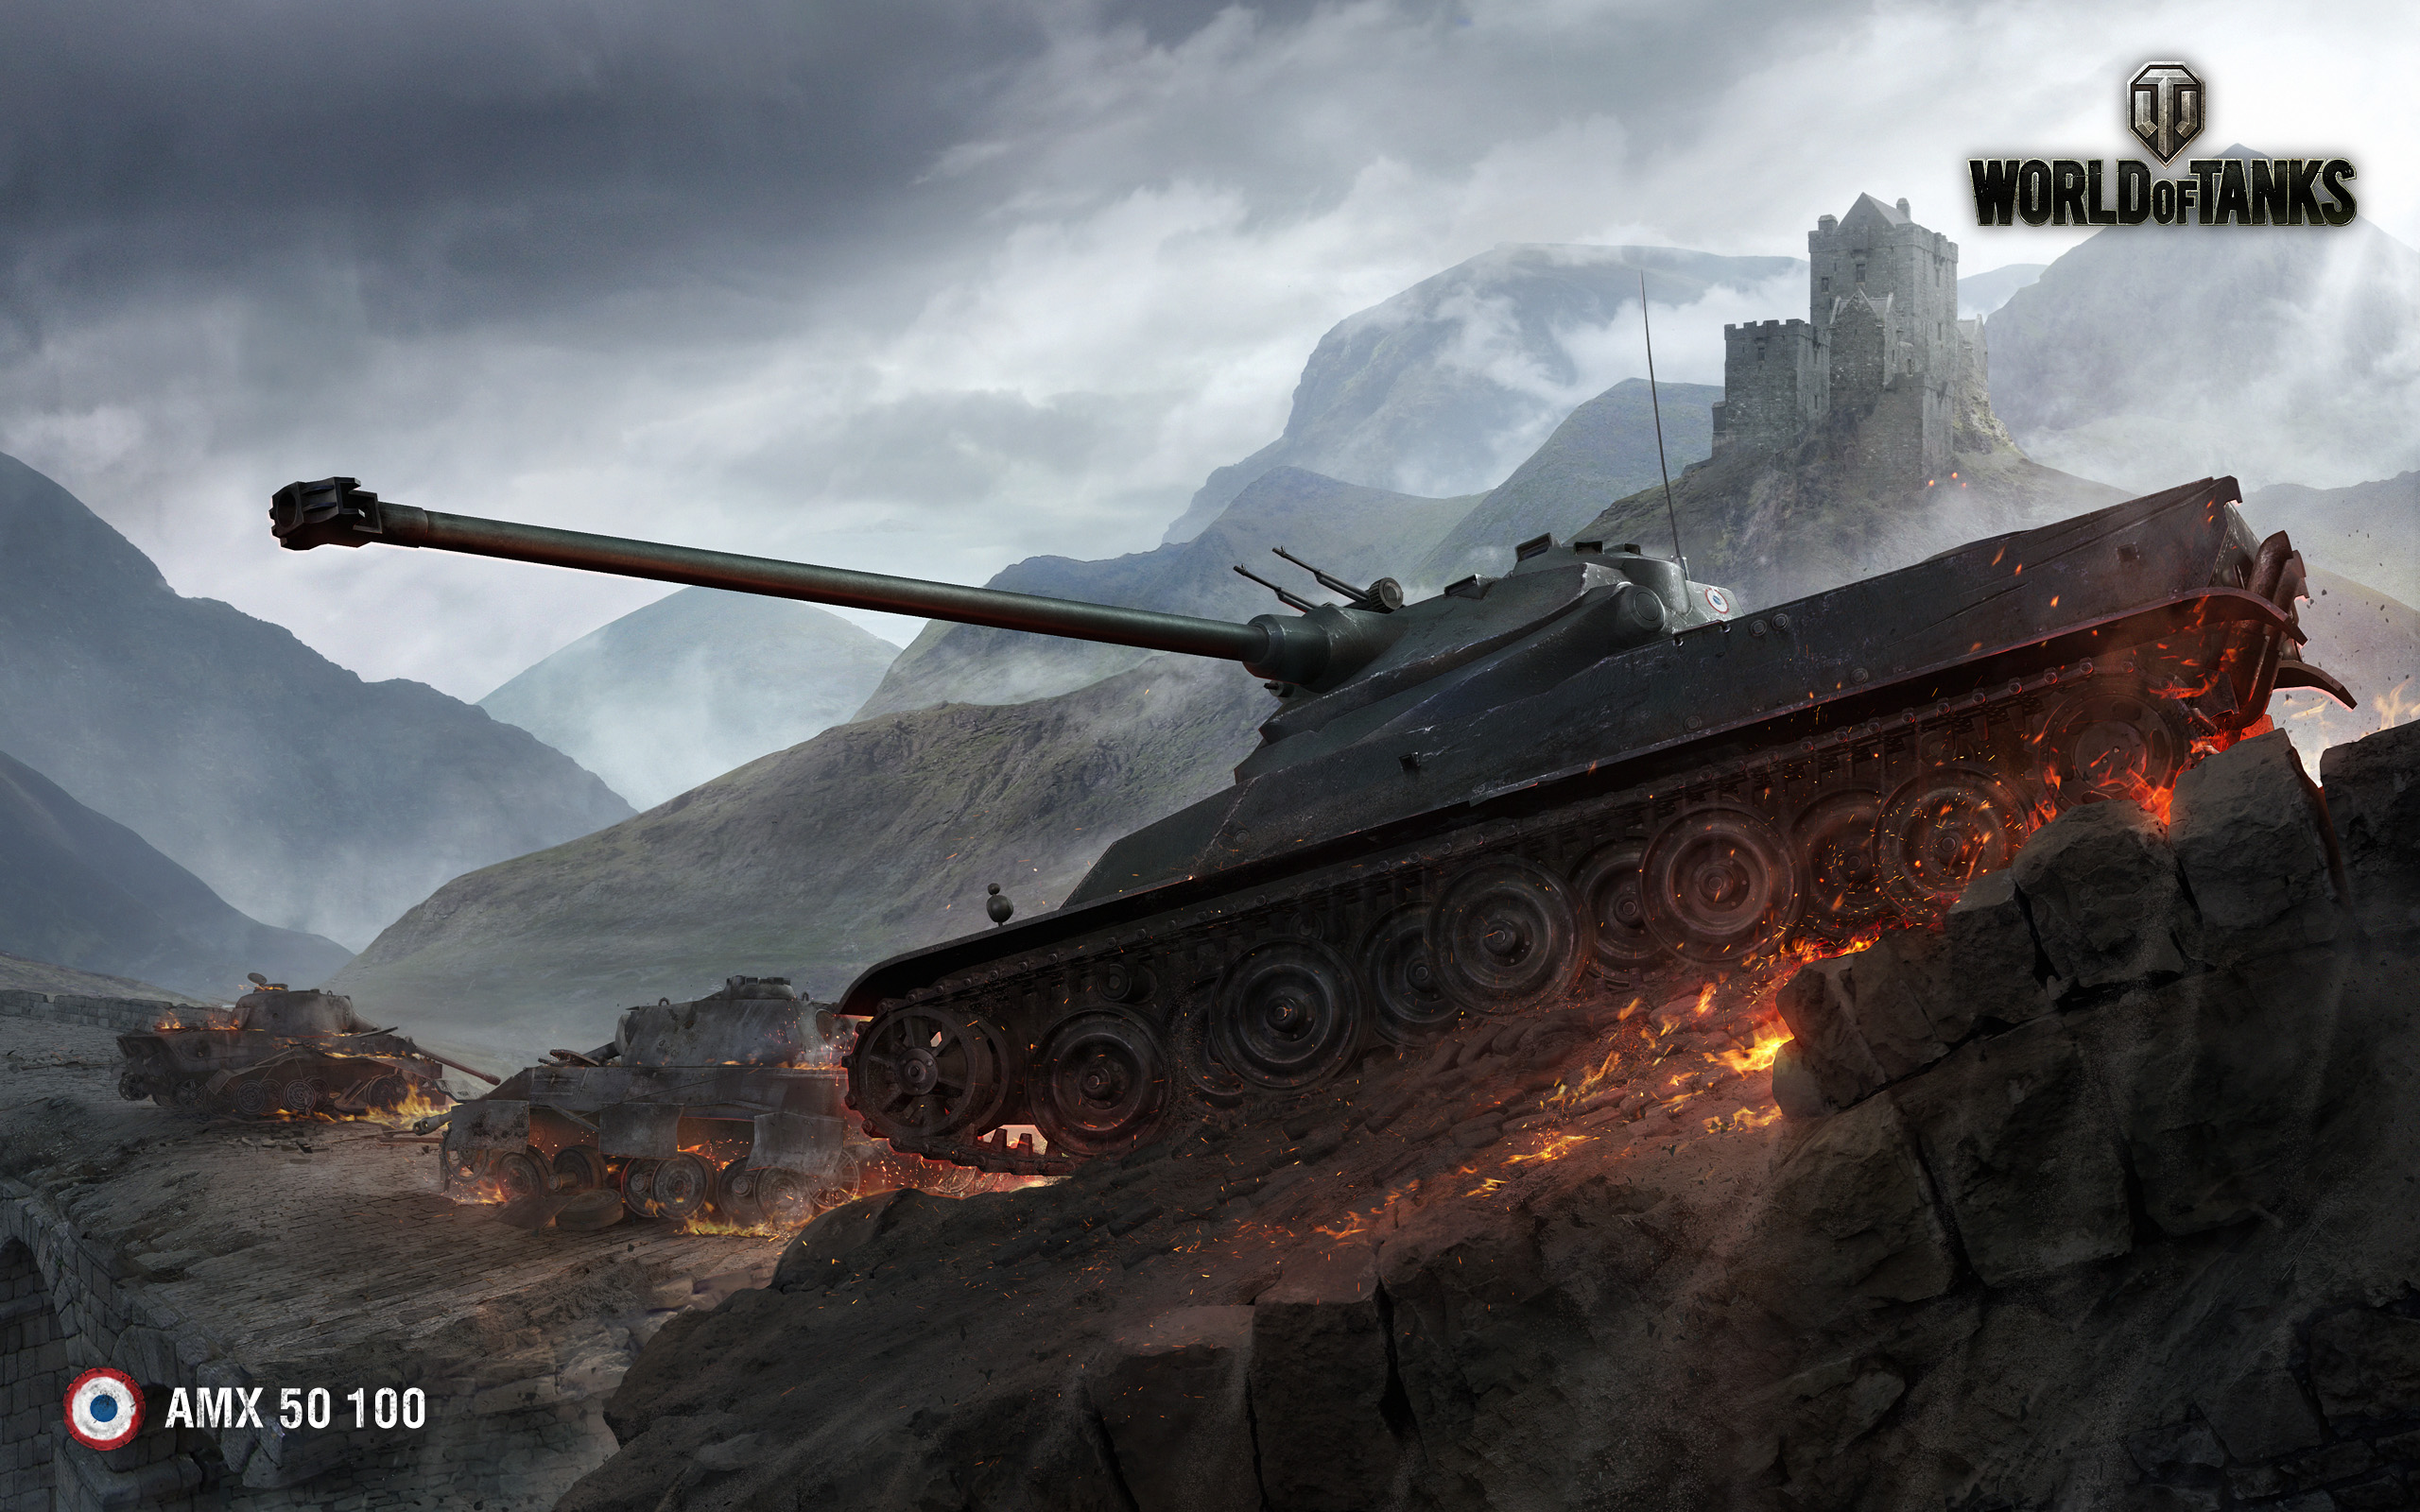 AMX 50 100 World of Tanks